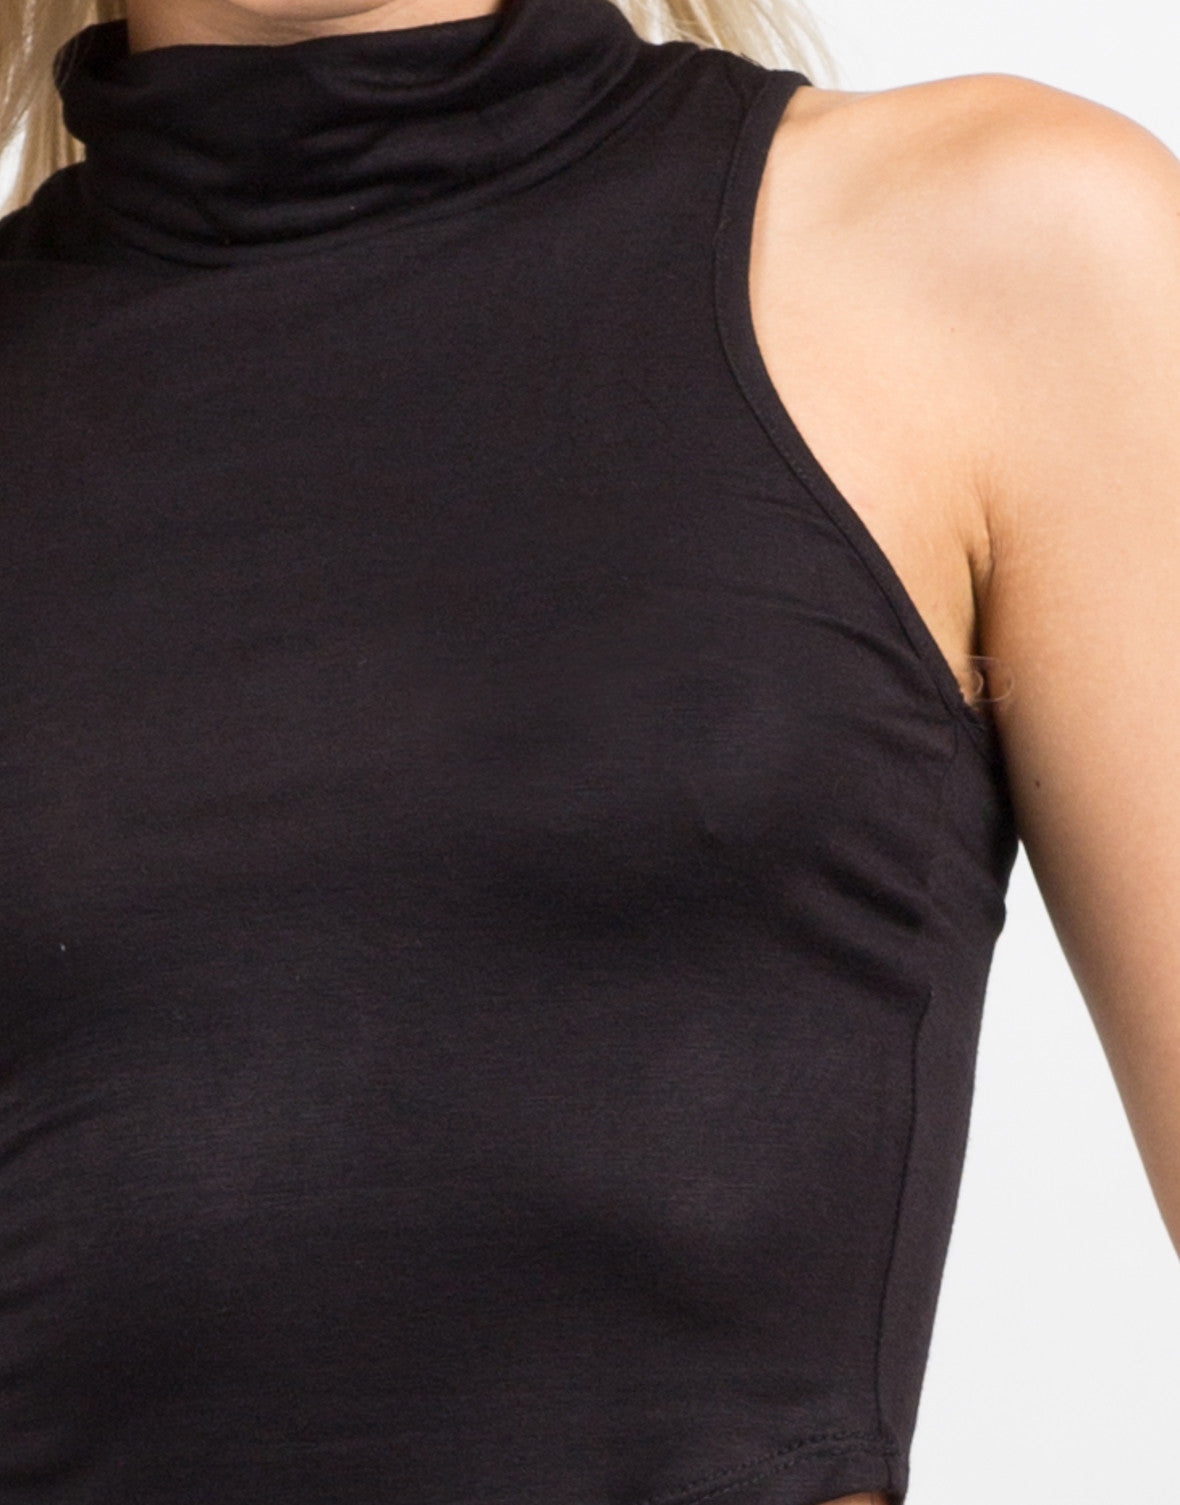 Detail of Cowl Neck Sleeveless Top